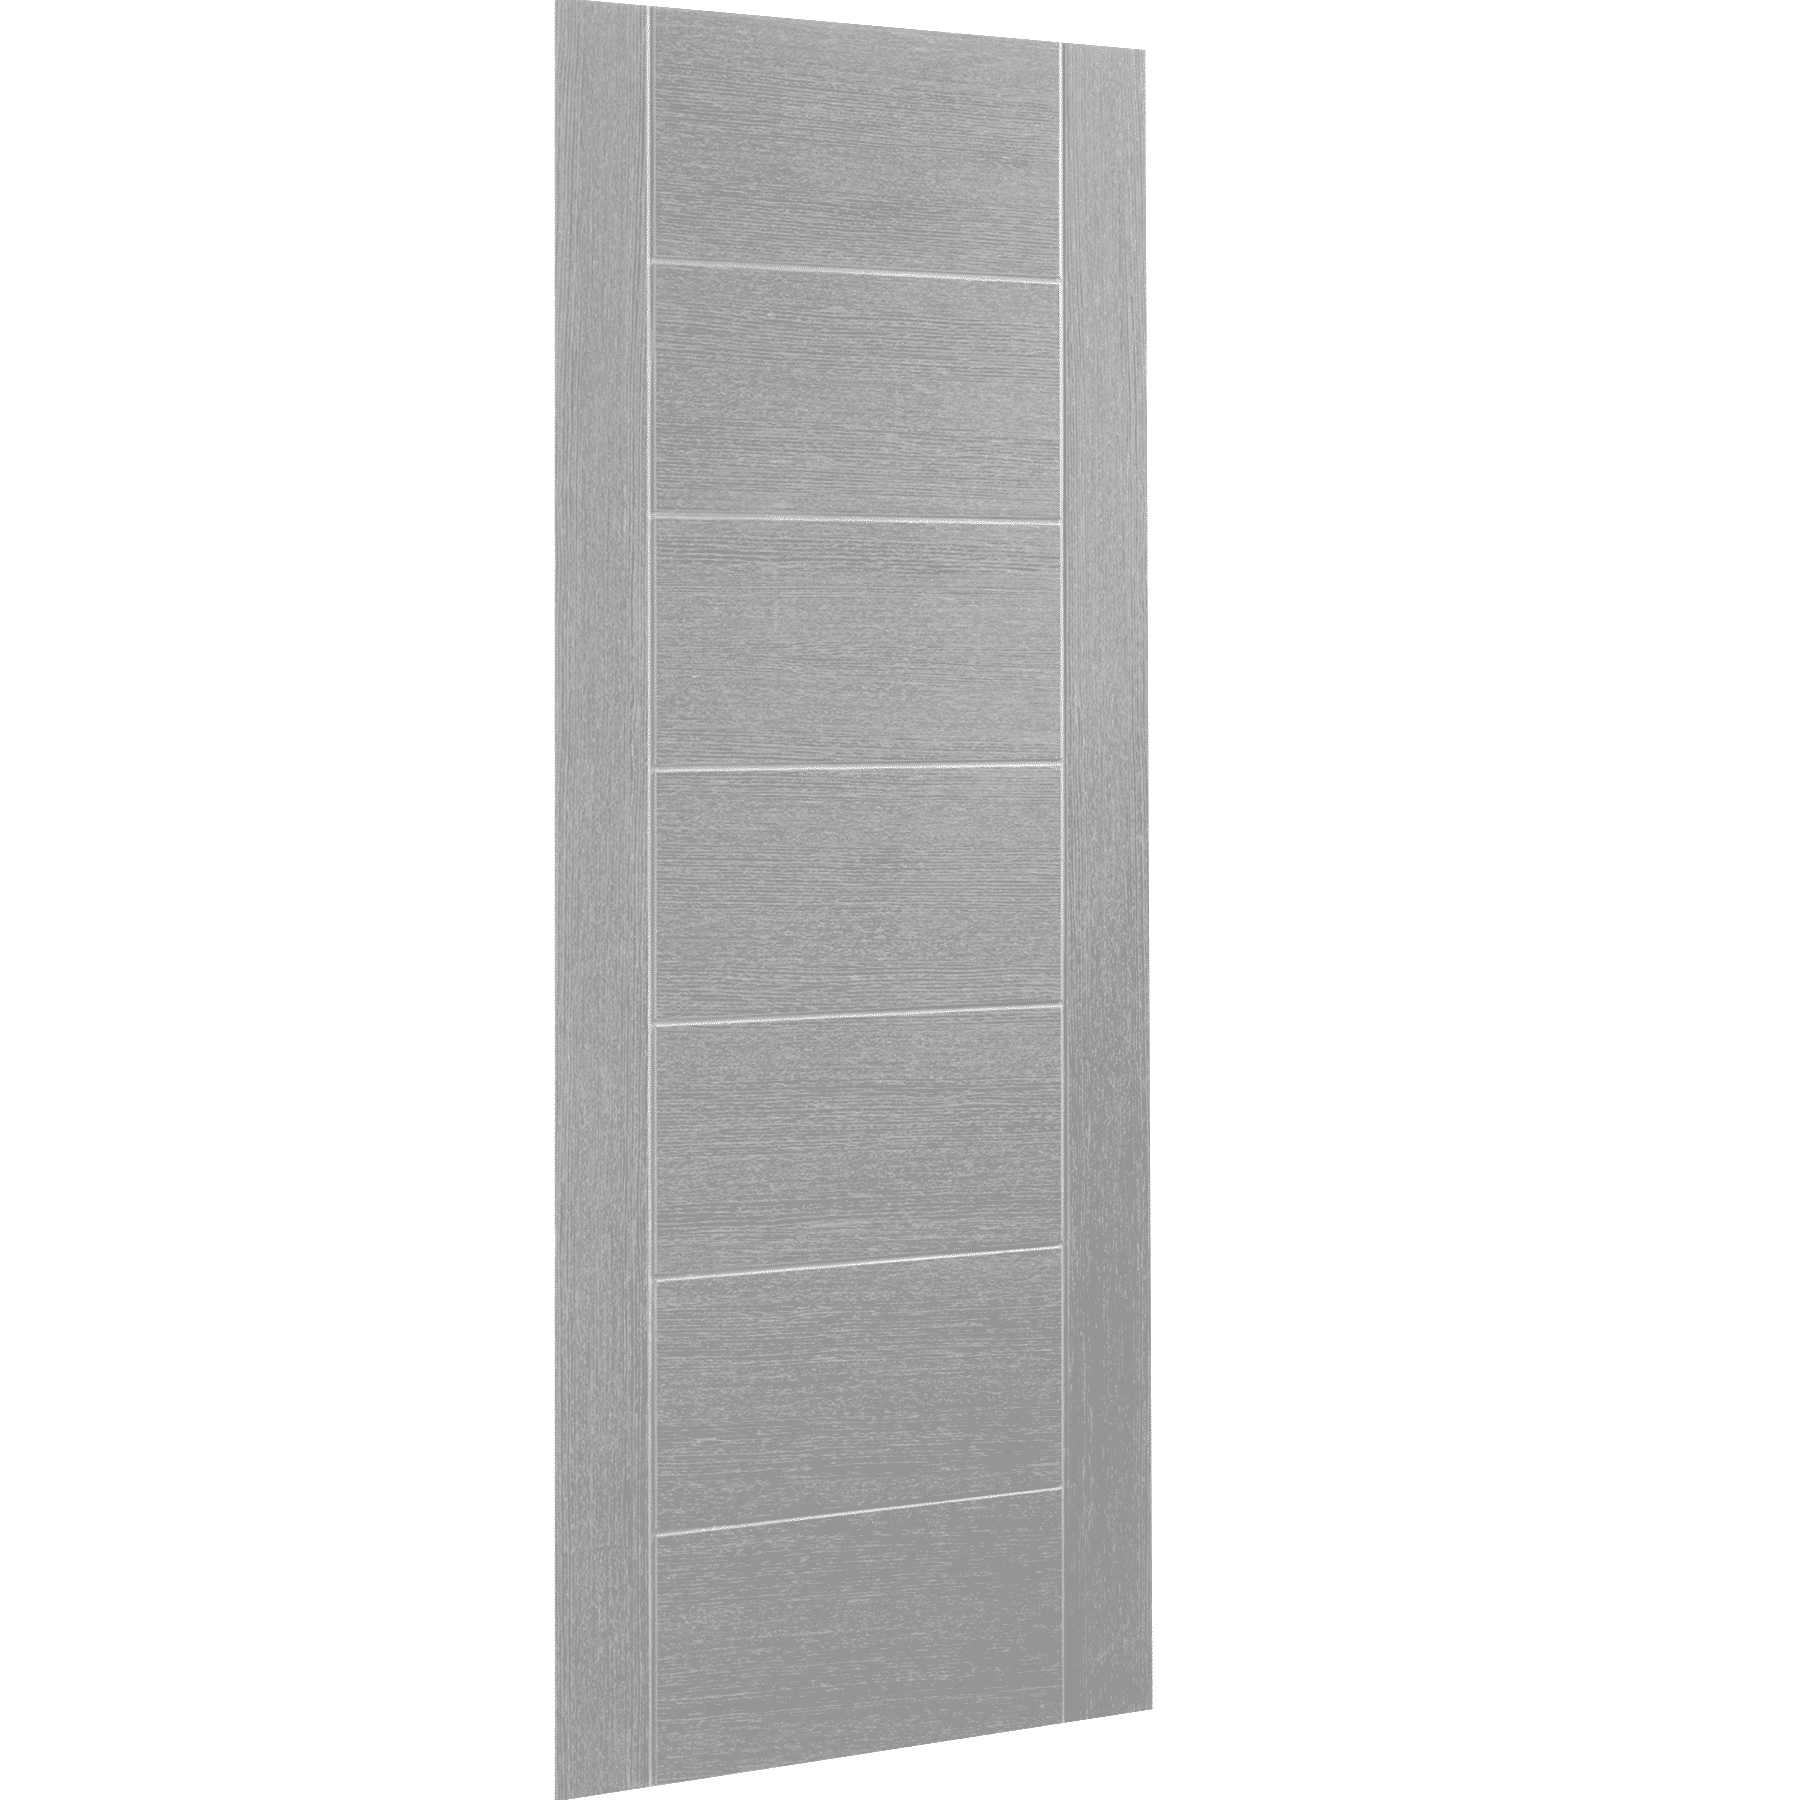 Palermo Pre-Finished Light Grey interior Door skew